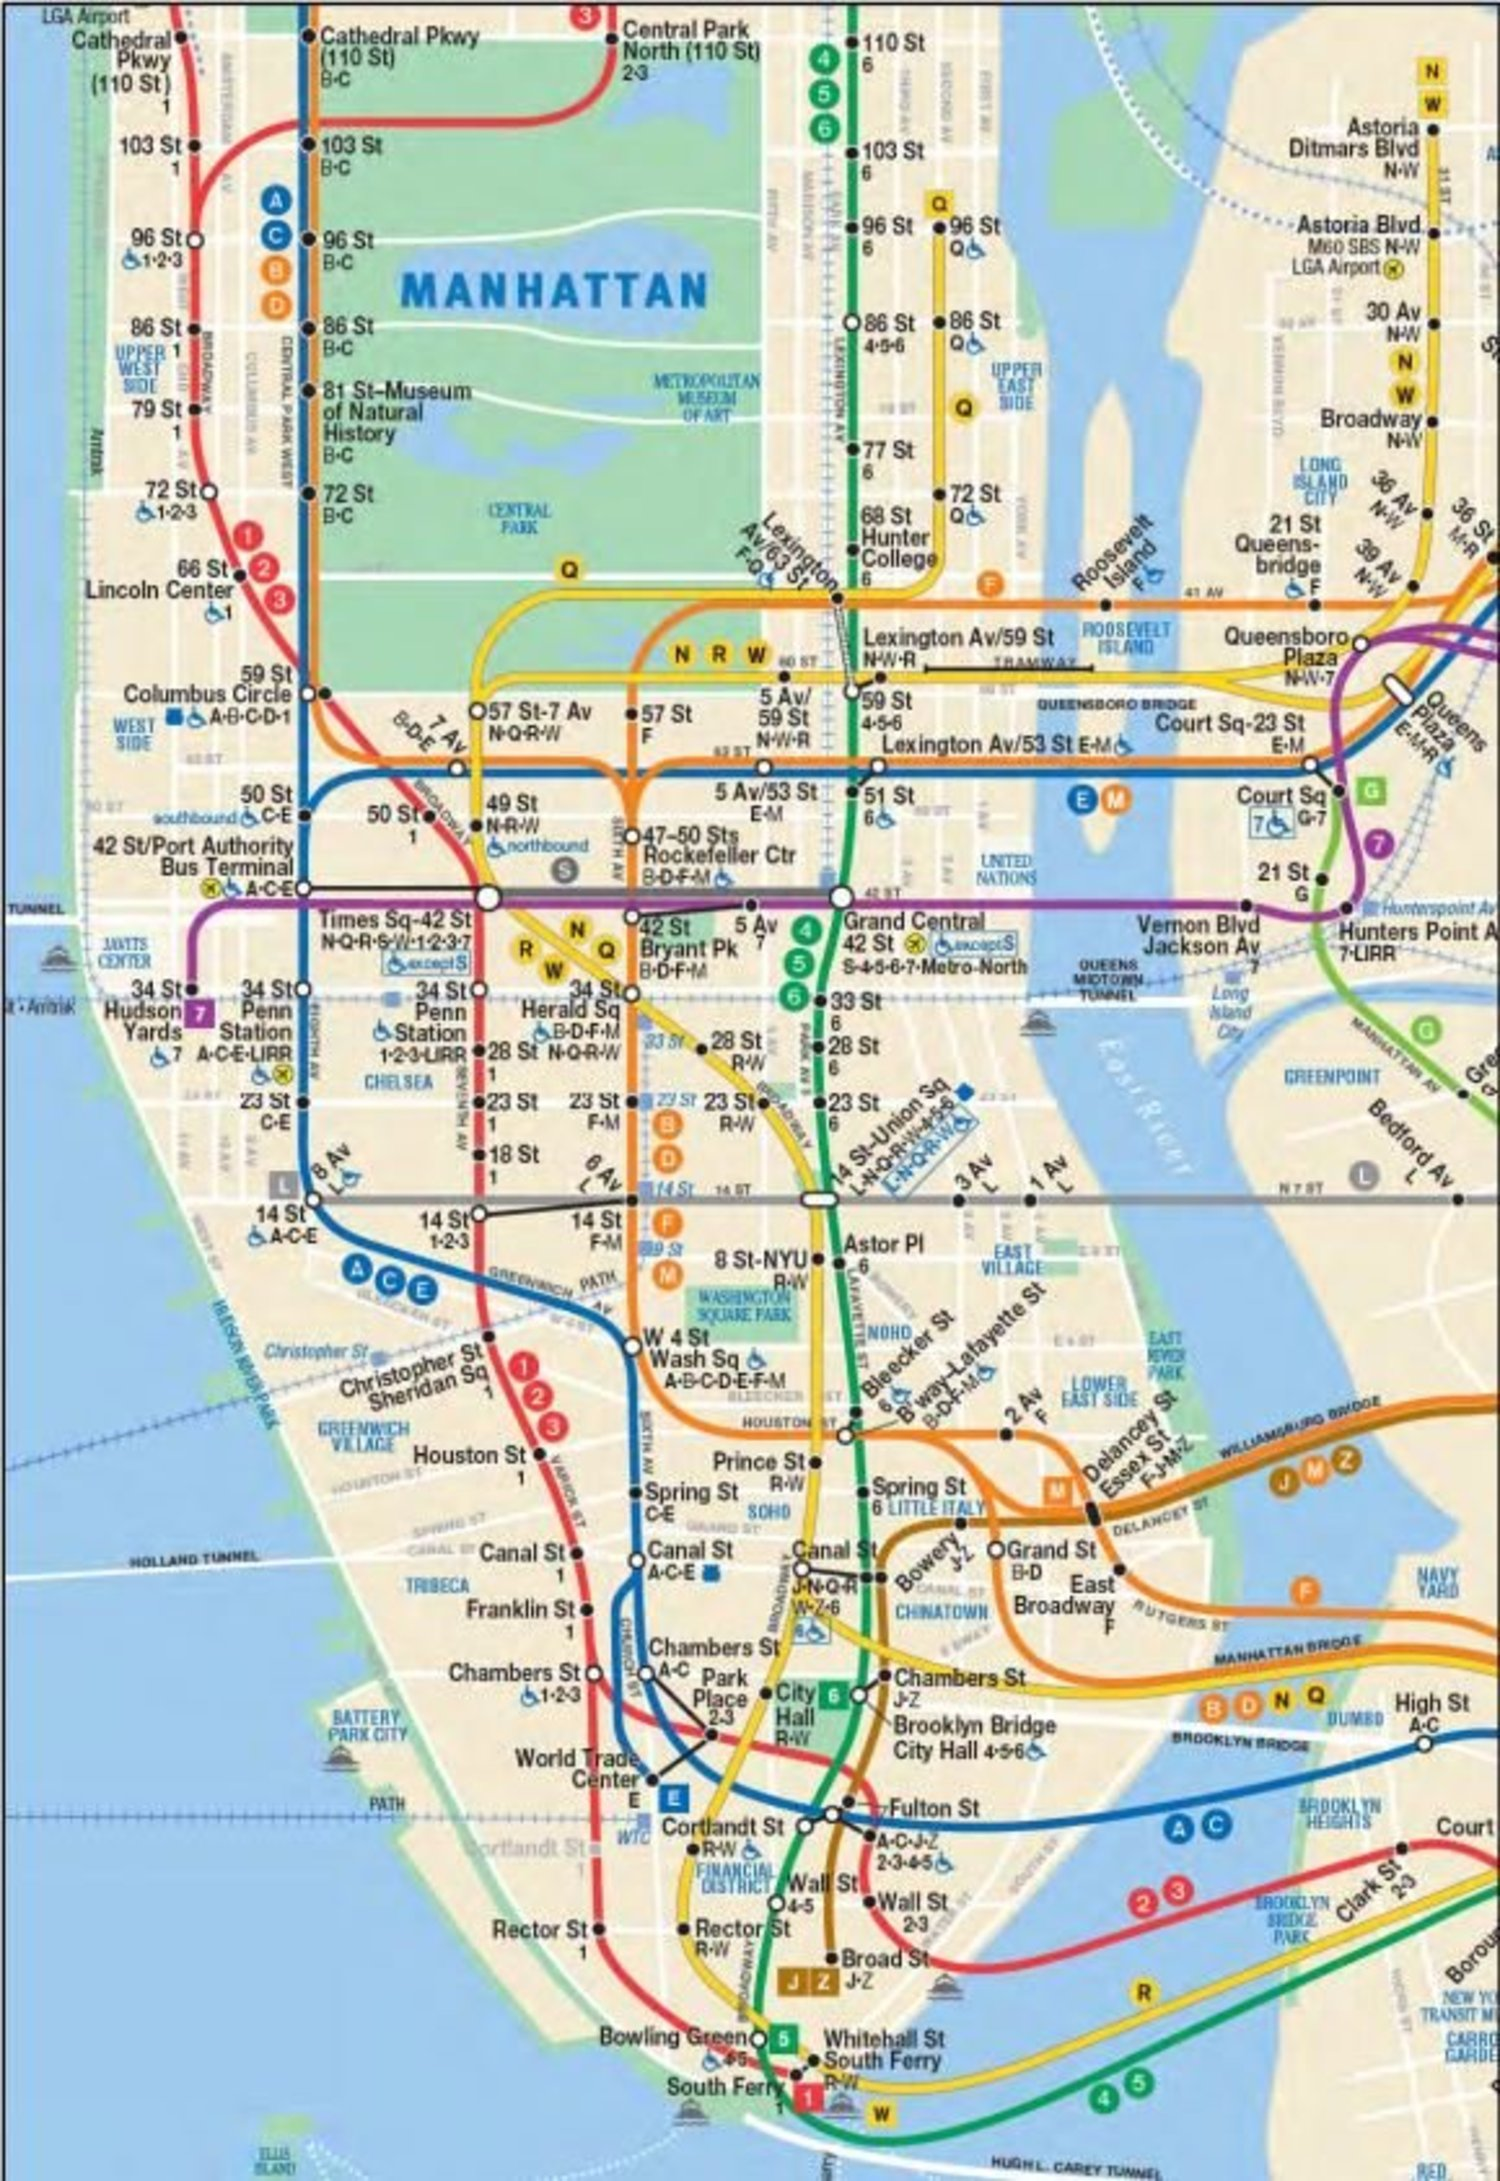 Astoria Subway Map.Map Shows Subway Map Updated For 2nd Ave Subway And Restored W Train